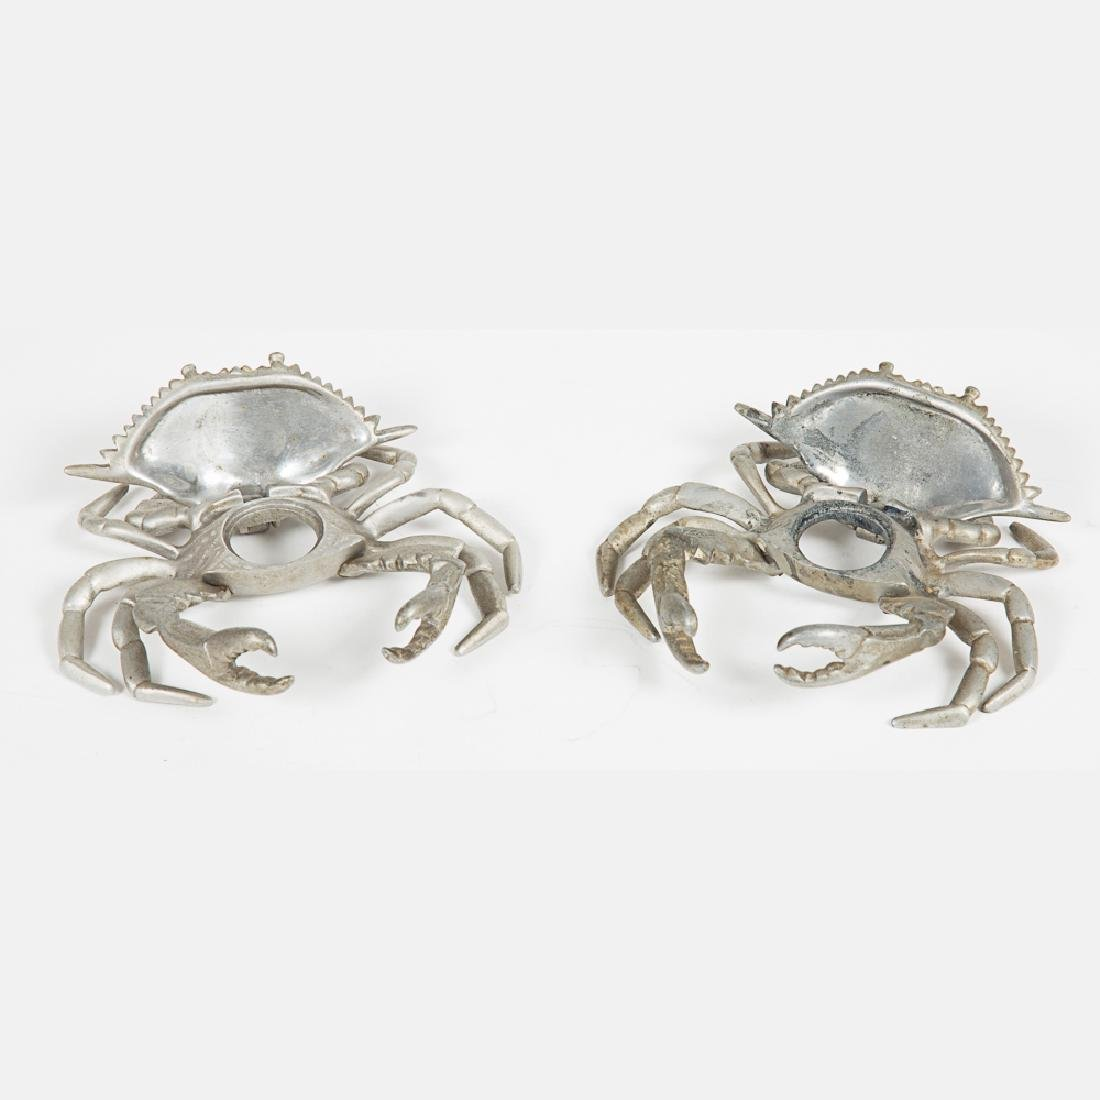 Two Aluminum Crab Form Encriers from the Louisiana - 4